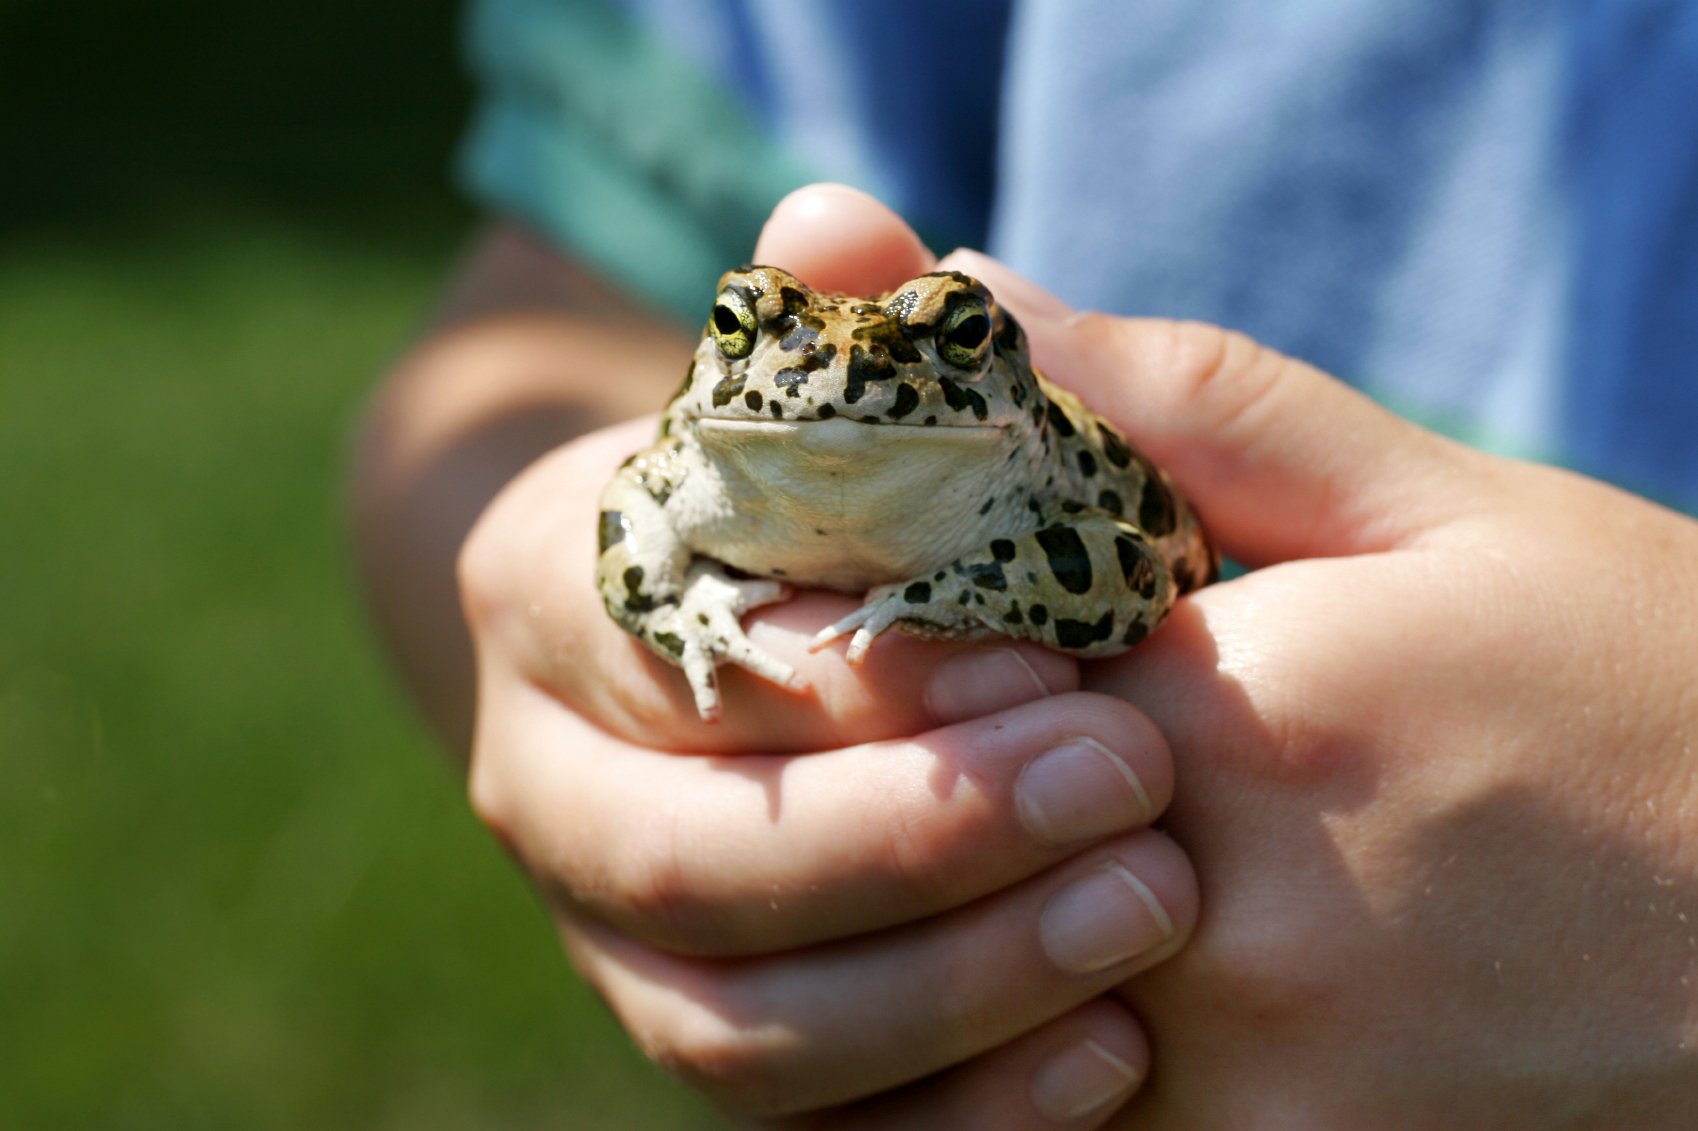 Mystic Aquarium Announces New Frogs! Exhibit